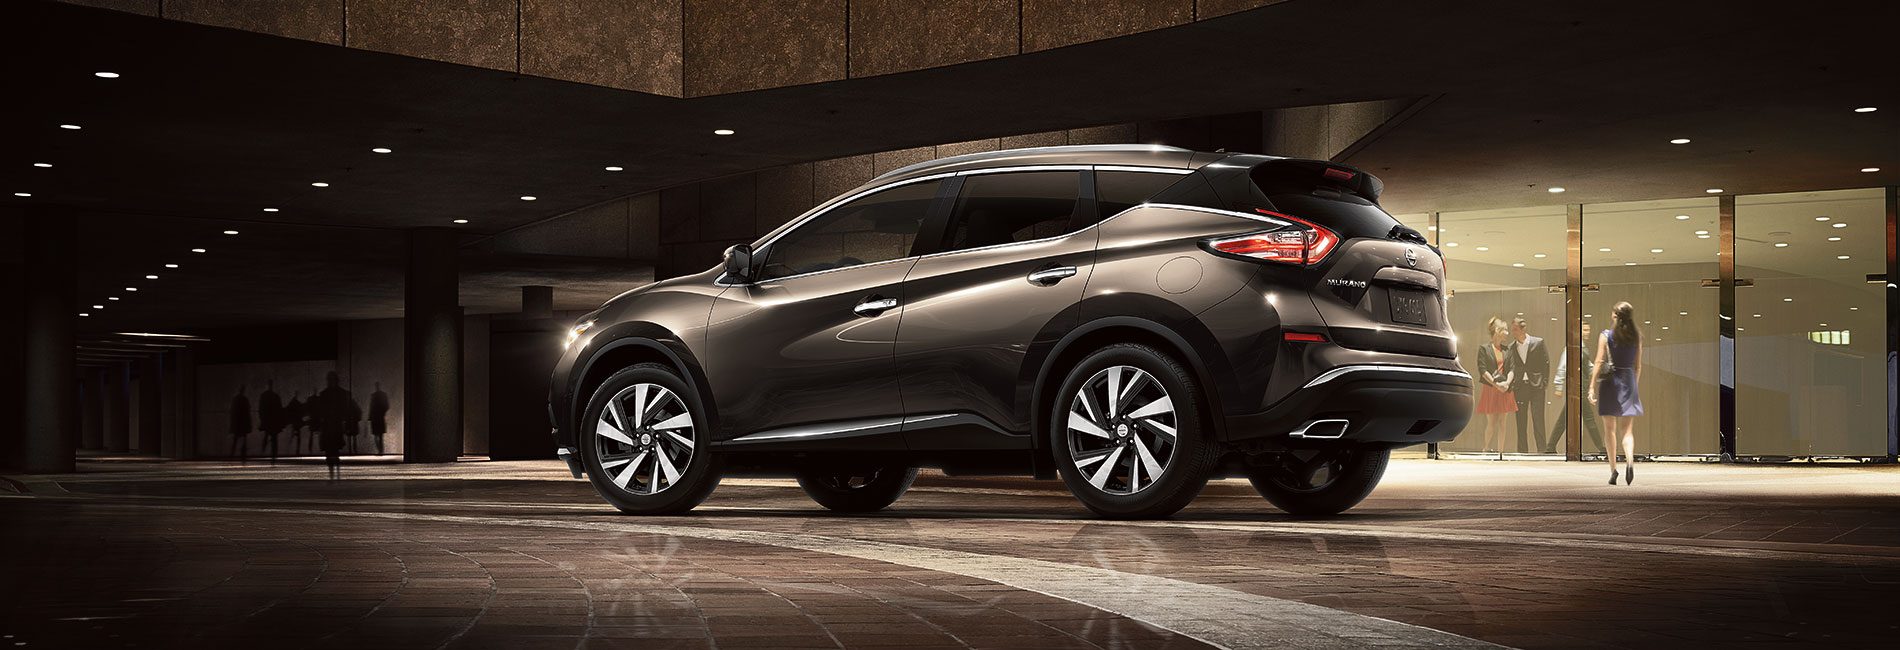 Nissan Murano Exterior Vehicle Features